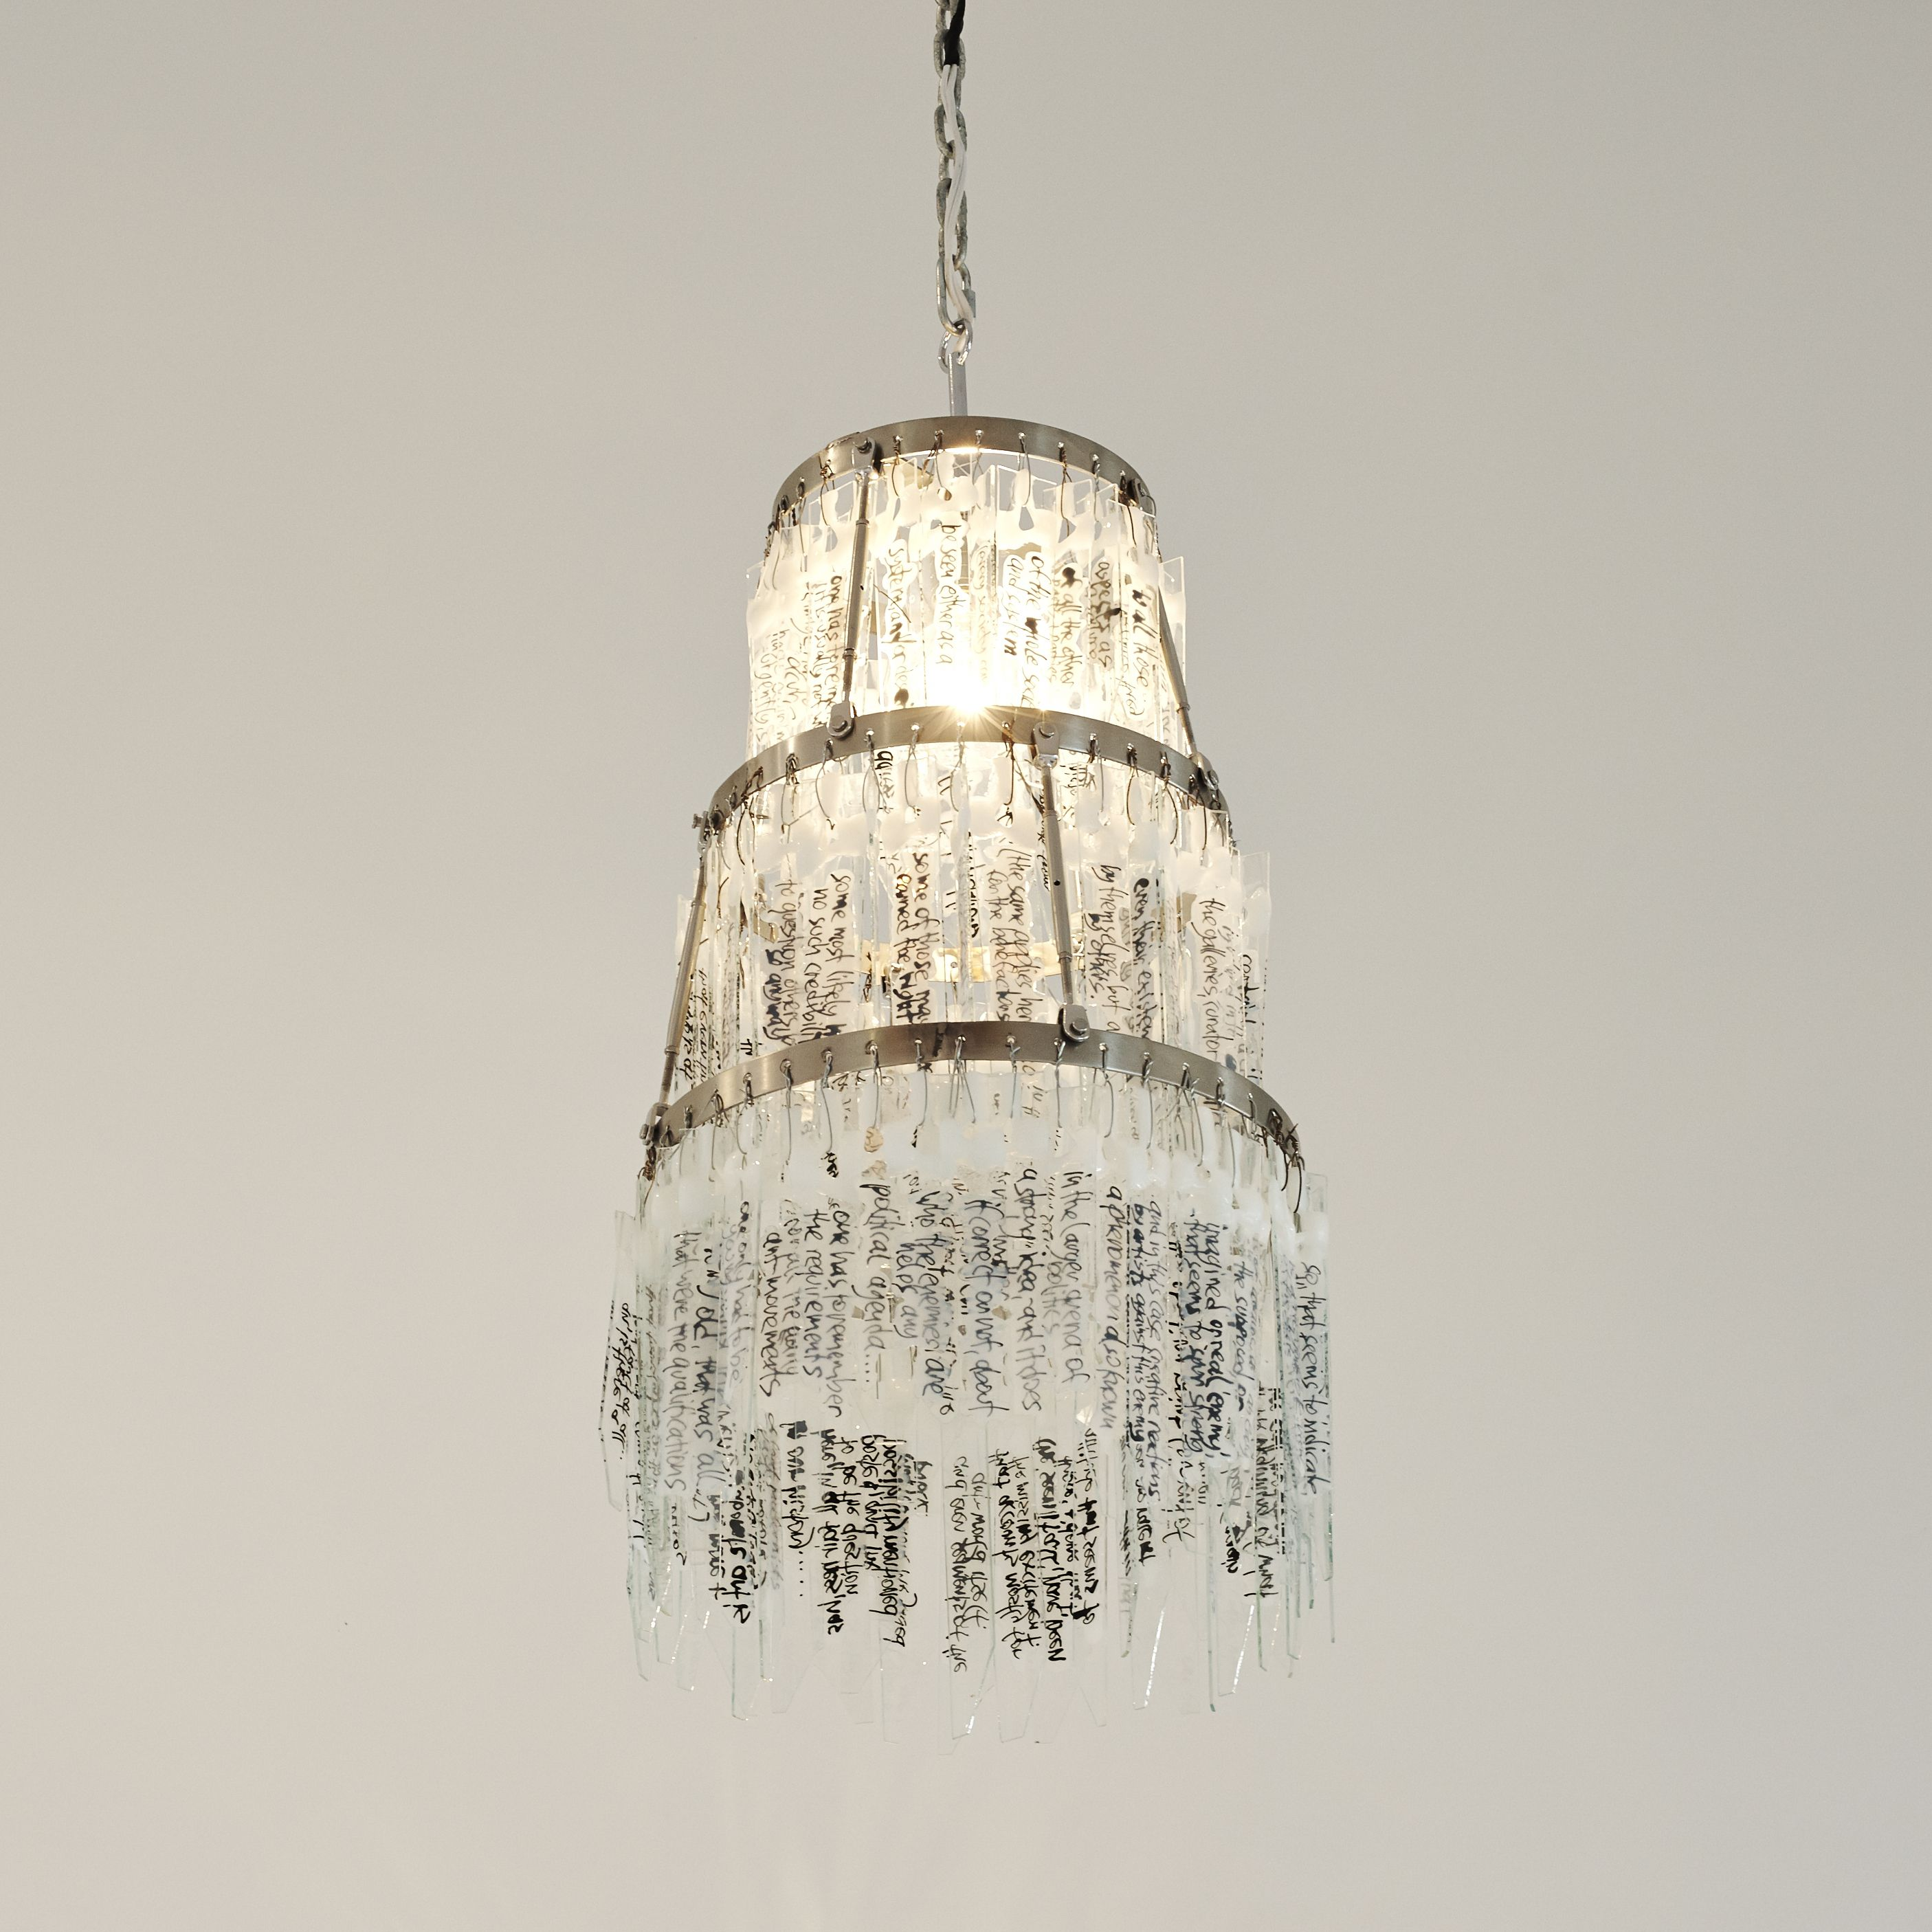 Weiss hand made chandeliers made of shattered glass pieces consists weiss hand made chandeliers made of shattered glass pieces consists of weiss stream arubaitofo Image collections